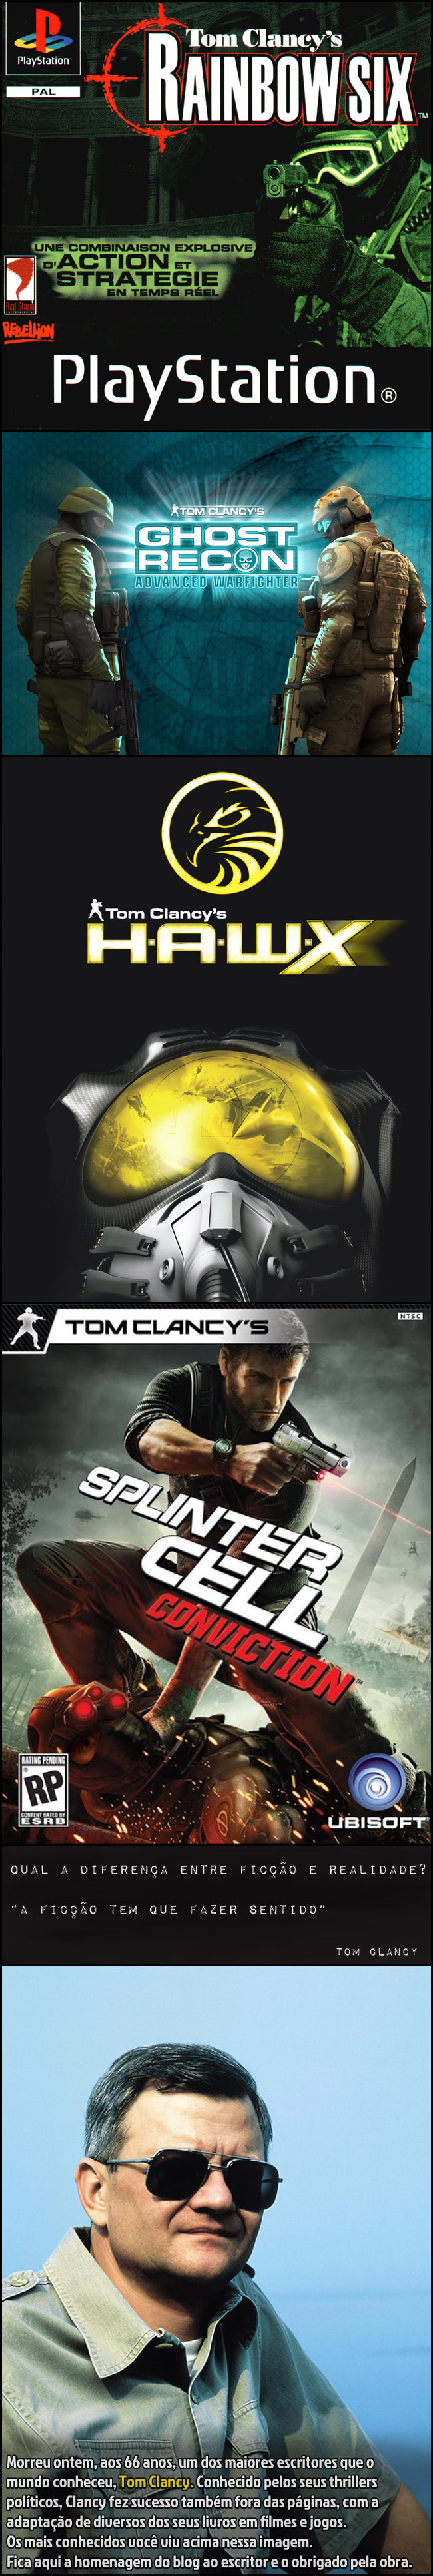 0 a tom clancy